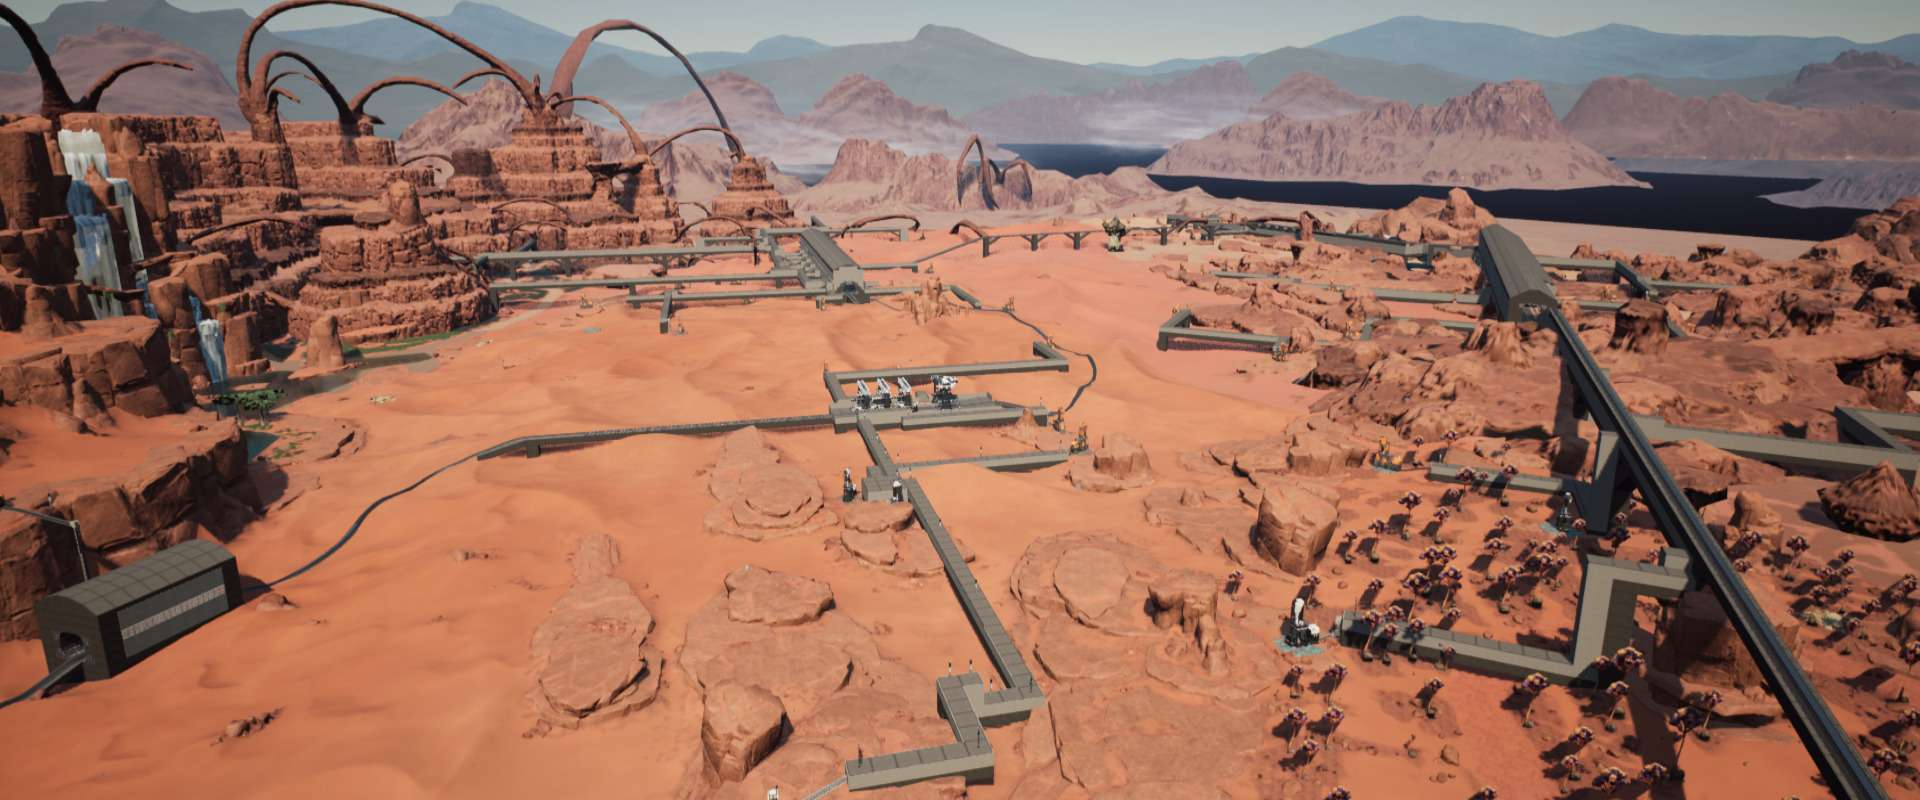 Take all the desert (except certains impures mines) by trains